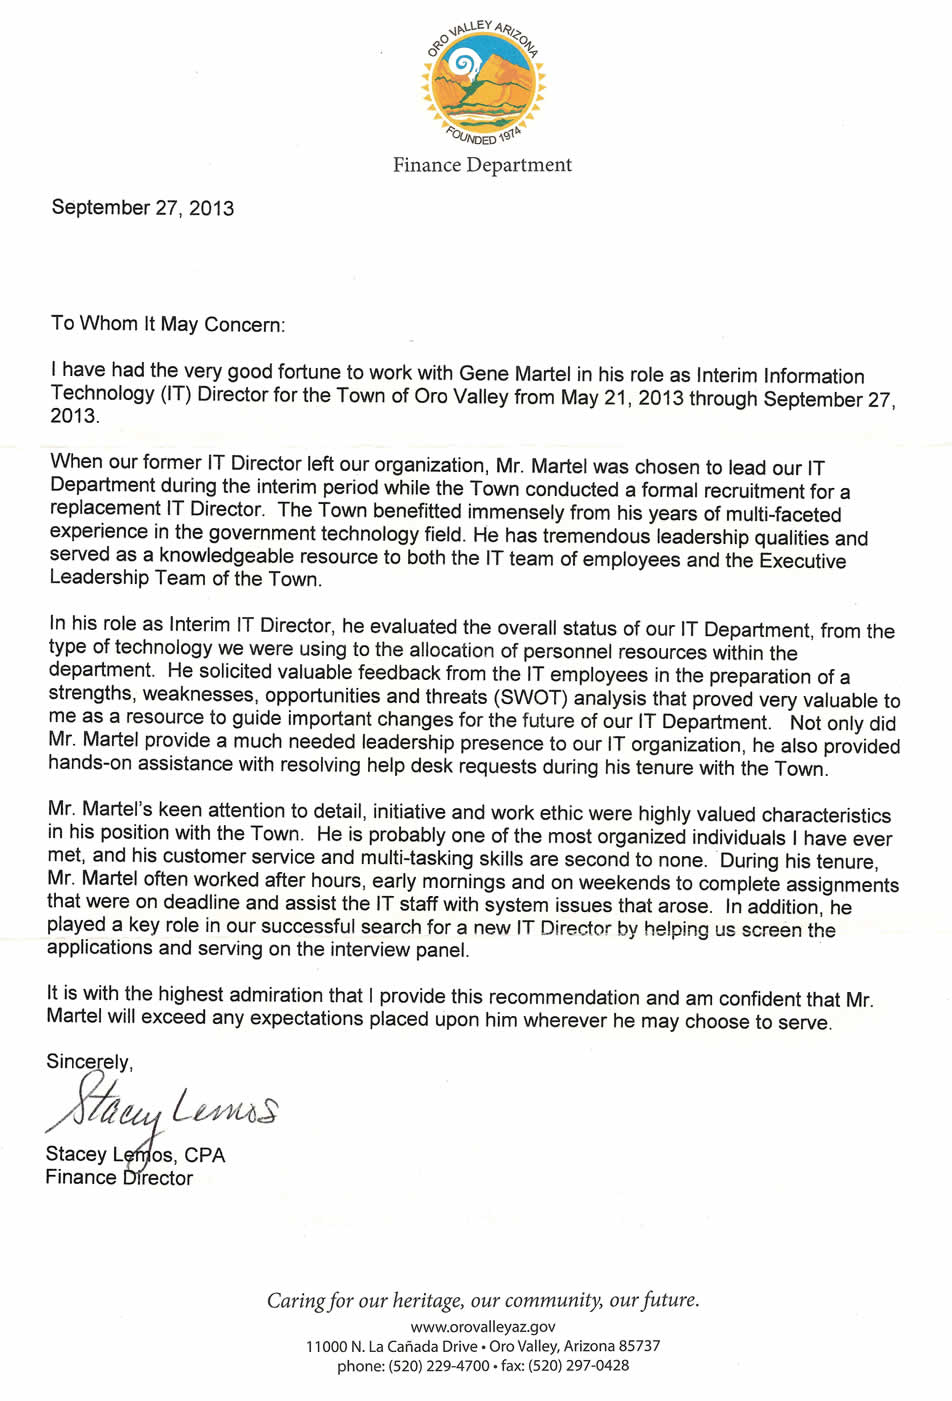 Letter from Stacey Lemos Oro Valley Finance Director